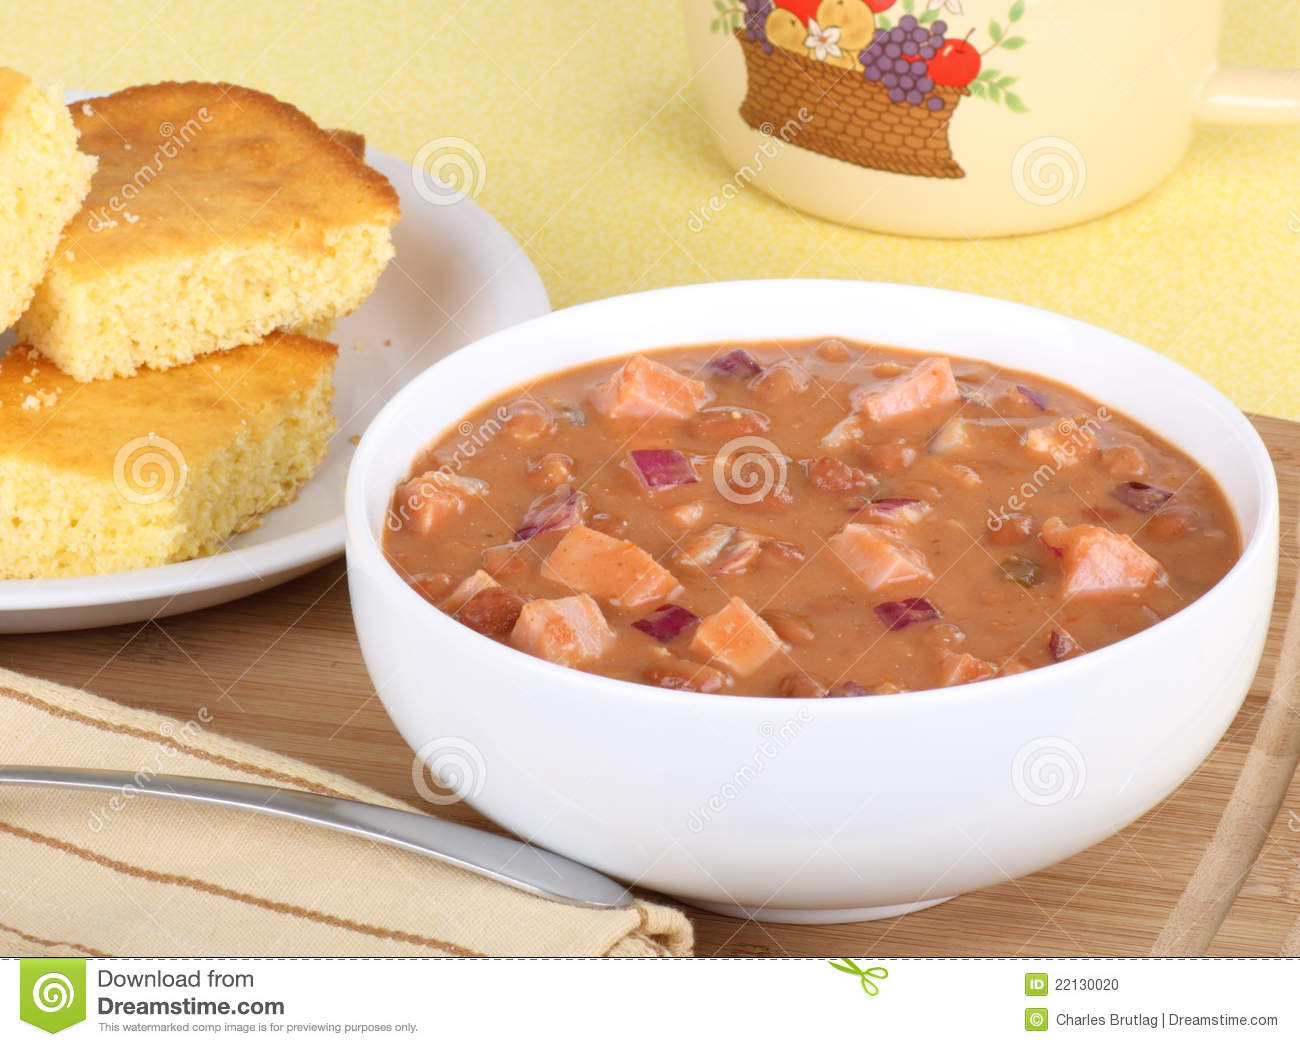 Bowl Of Ham And Bean Soup With A Plate Of Corn Bread In Background